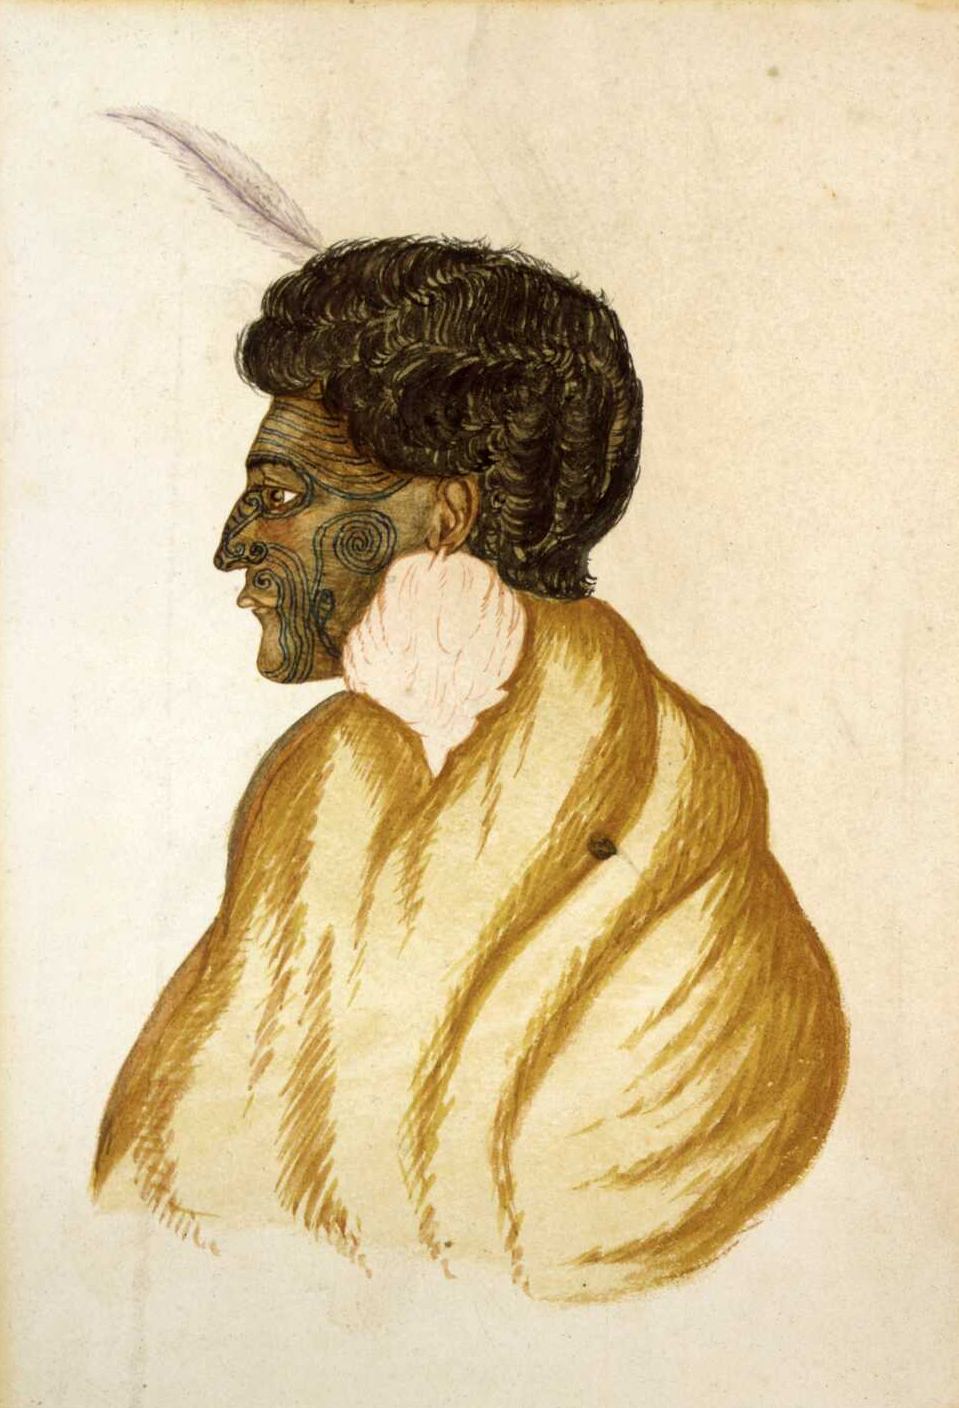 Te Raparaha, chief of the Kawias. Watercolor by R. Hall circa 1840s.